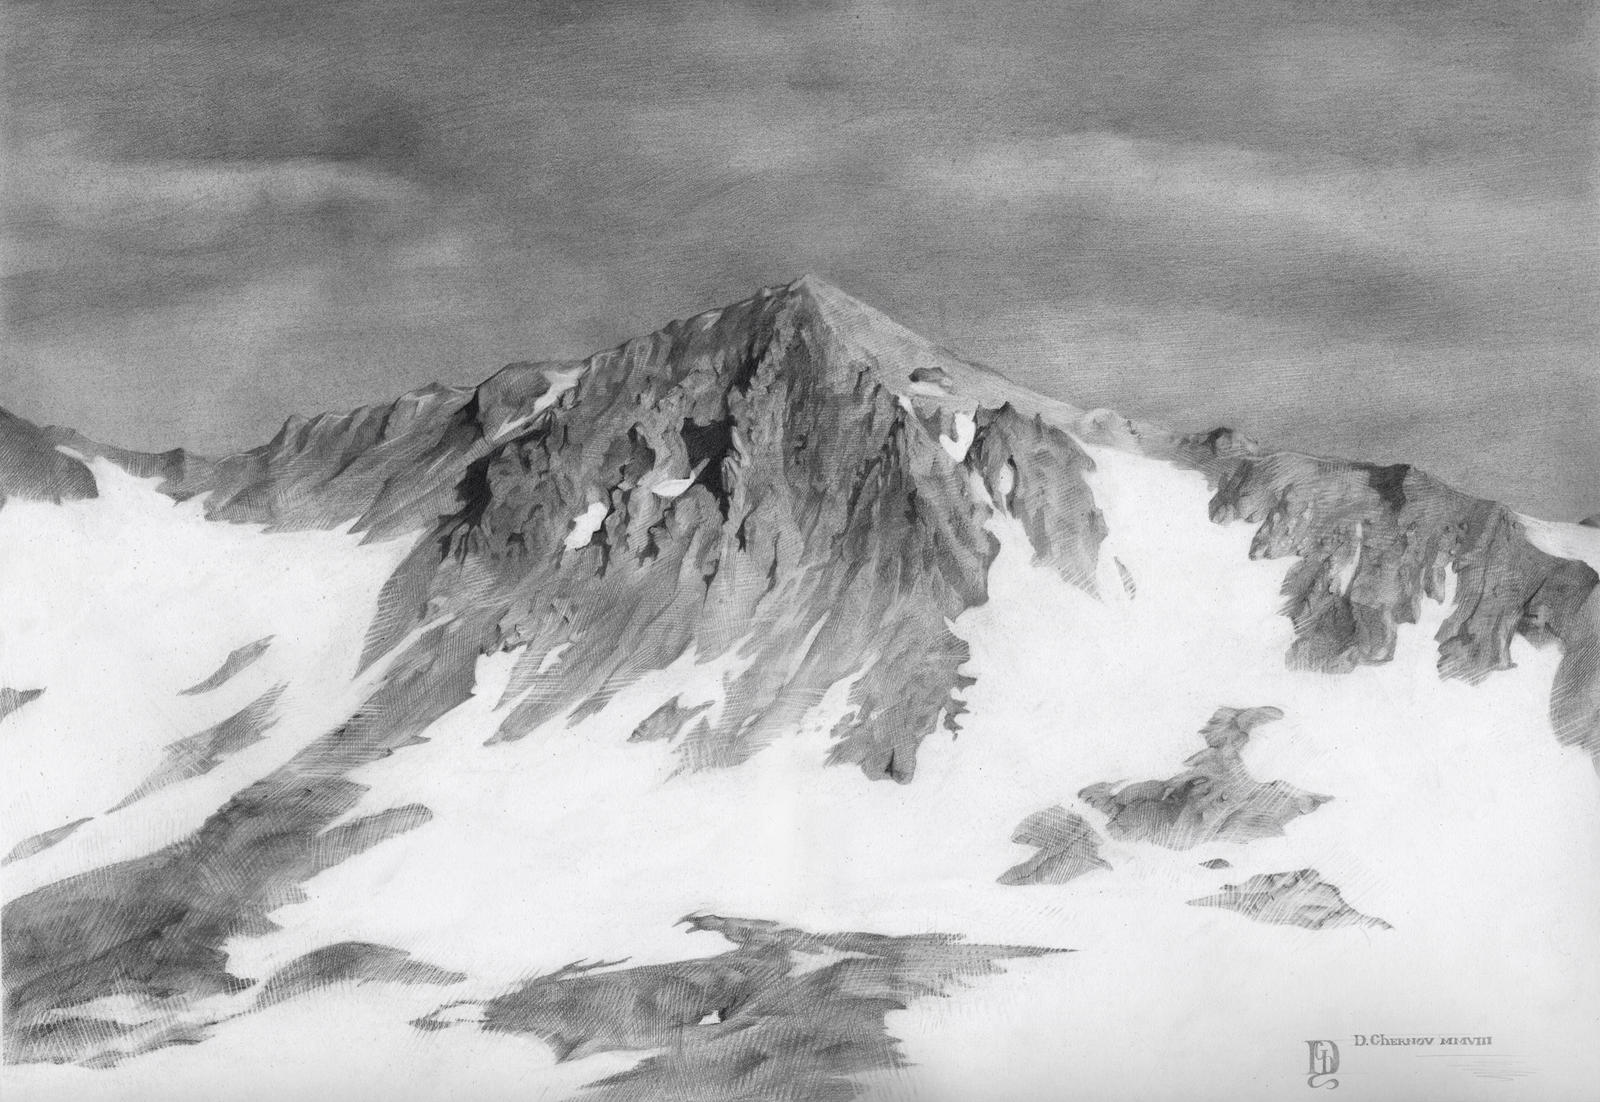 Snow Mountain by DChernov on DeviantArt